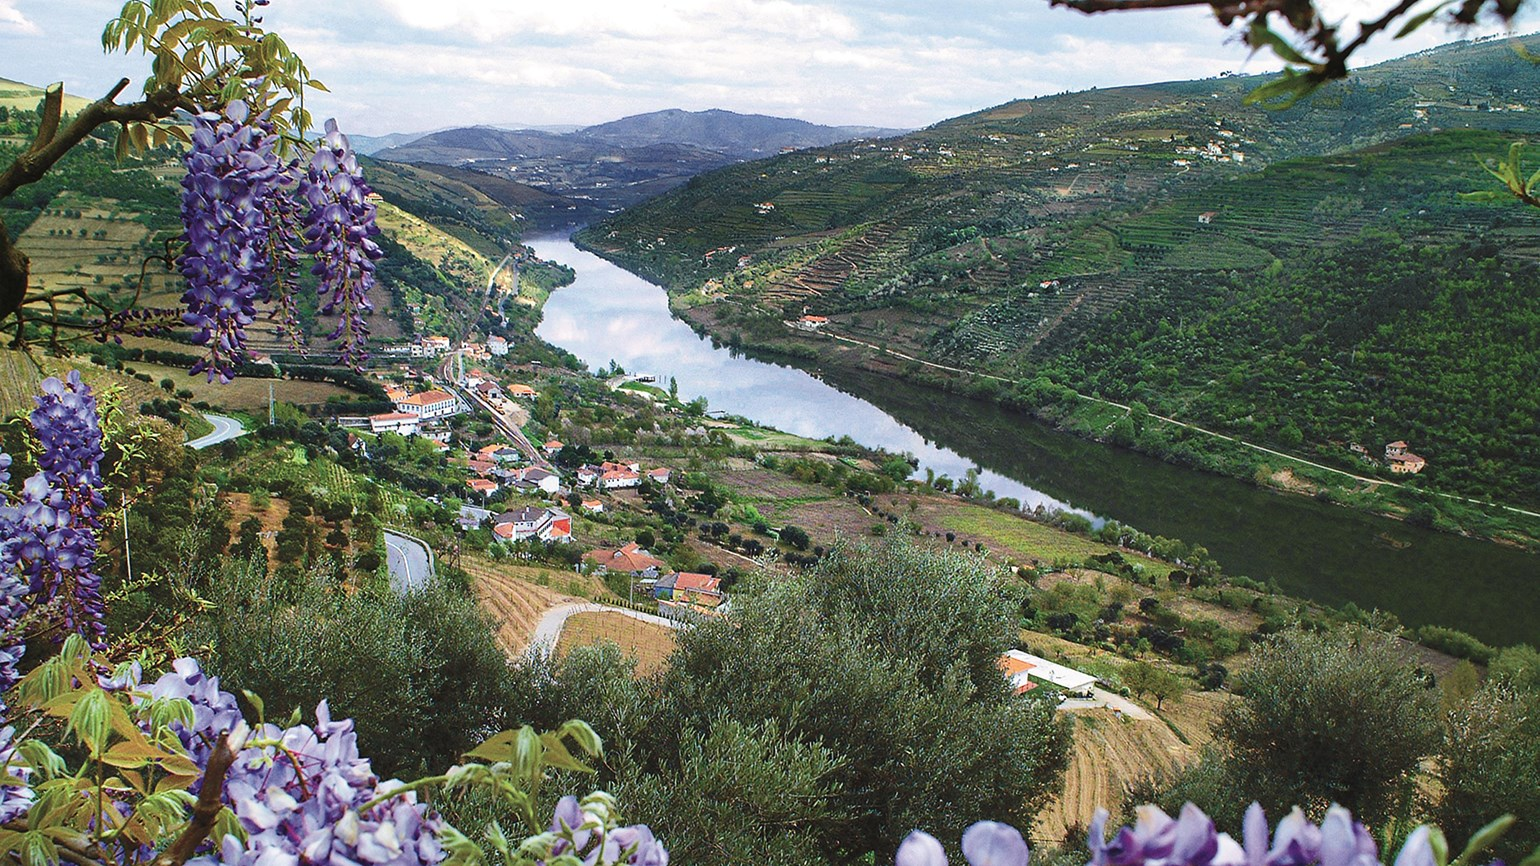 AmaWaterways brings U.S. winemakers to European wine regions